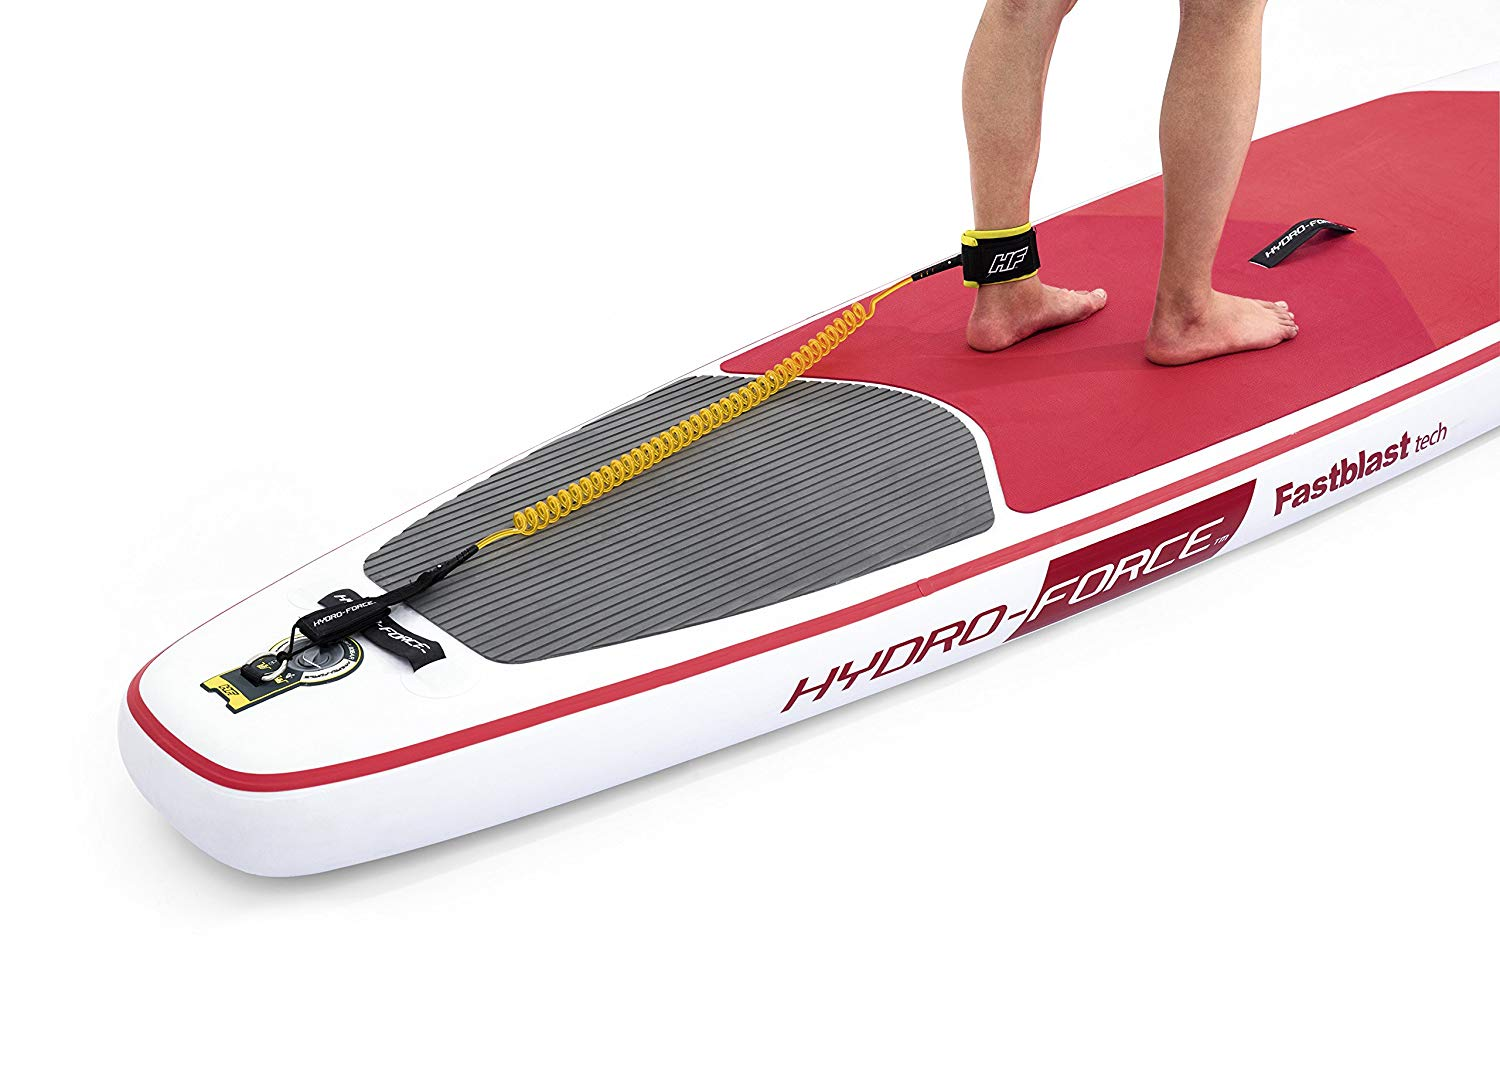 SUPER OFERTA TABLA SUP HINCHABLE-CHOLLO AMAZON